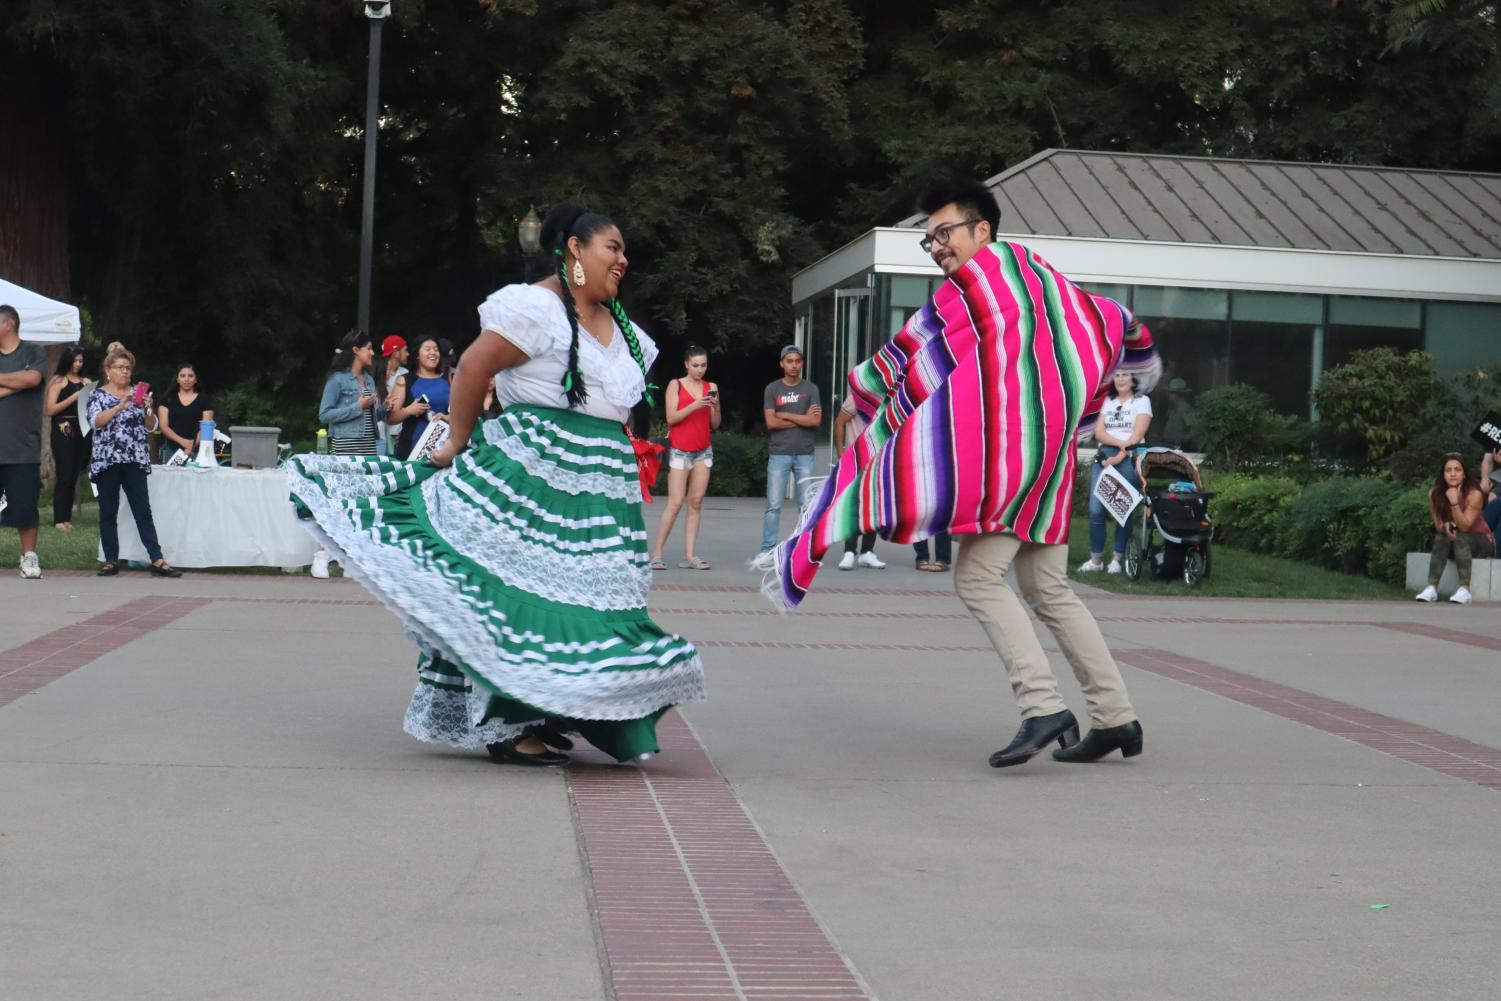 President+of+Sac+State%27s+Baile+Folklorico+Roxana+Javier+dances+with+member+Mario+Mendez+Lopez+at+the+California+State+Capitol+on+Tuesday%2C+Sept.+3.